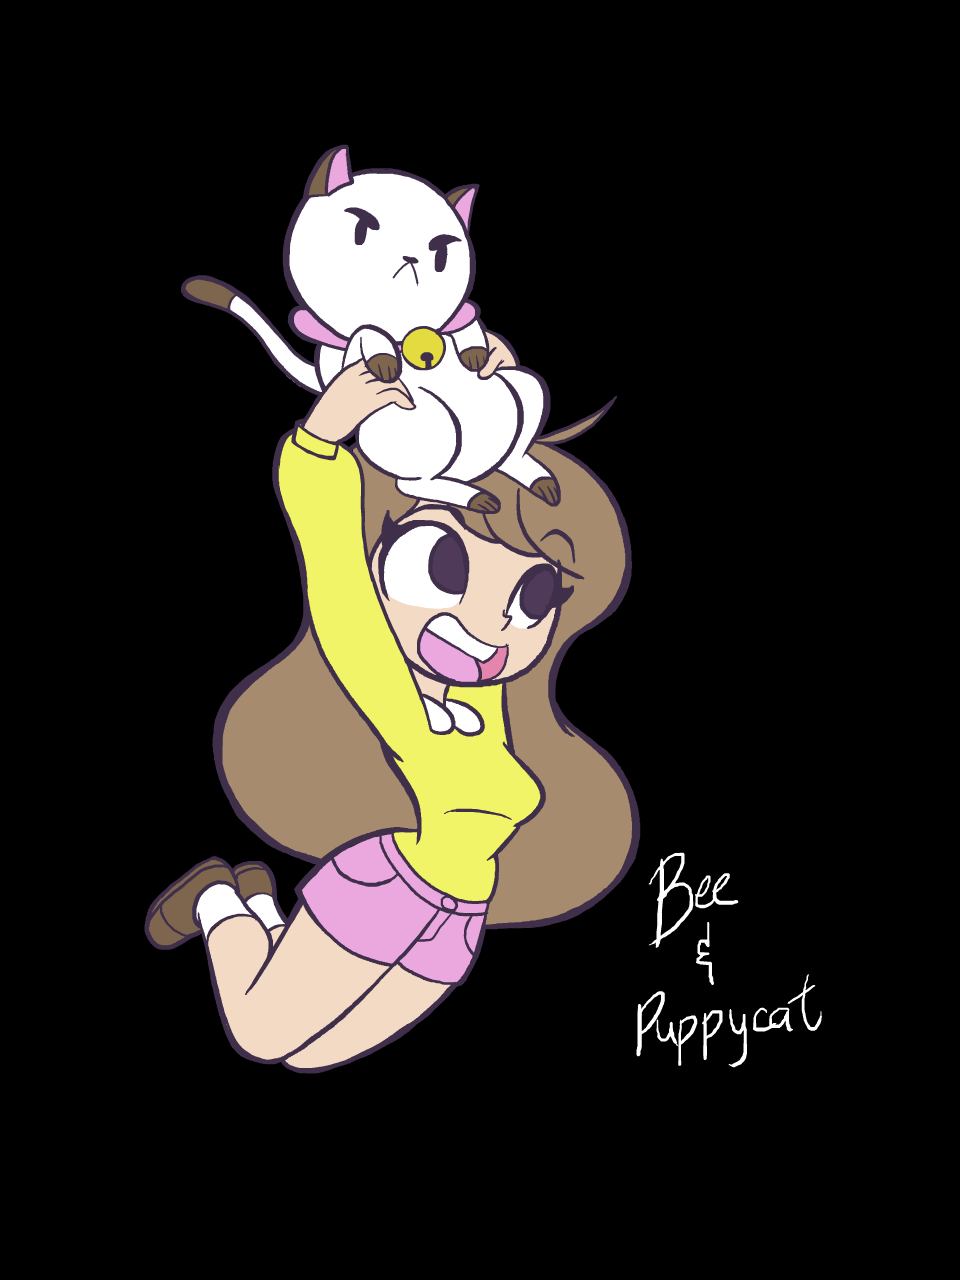 Bee and puppycat wallpaper variant 2 by Khuzang